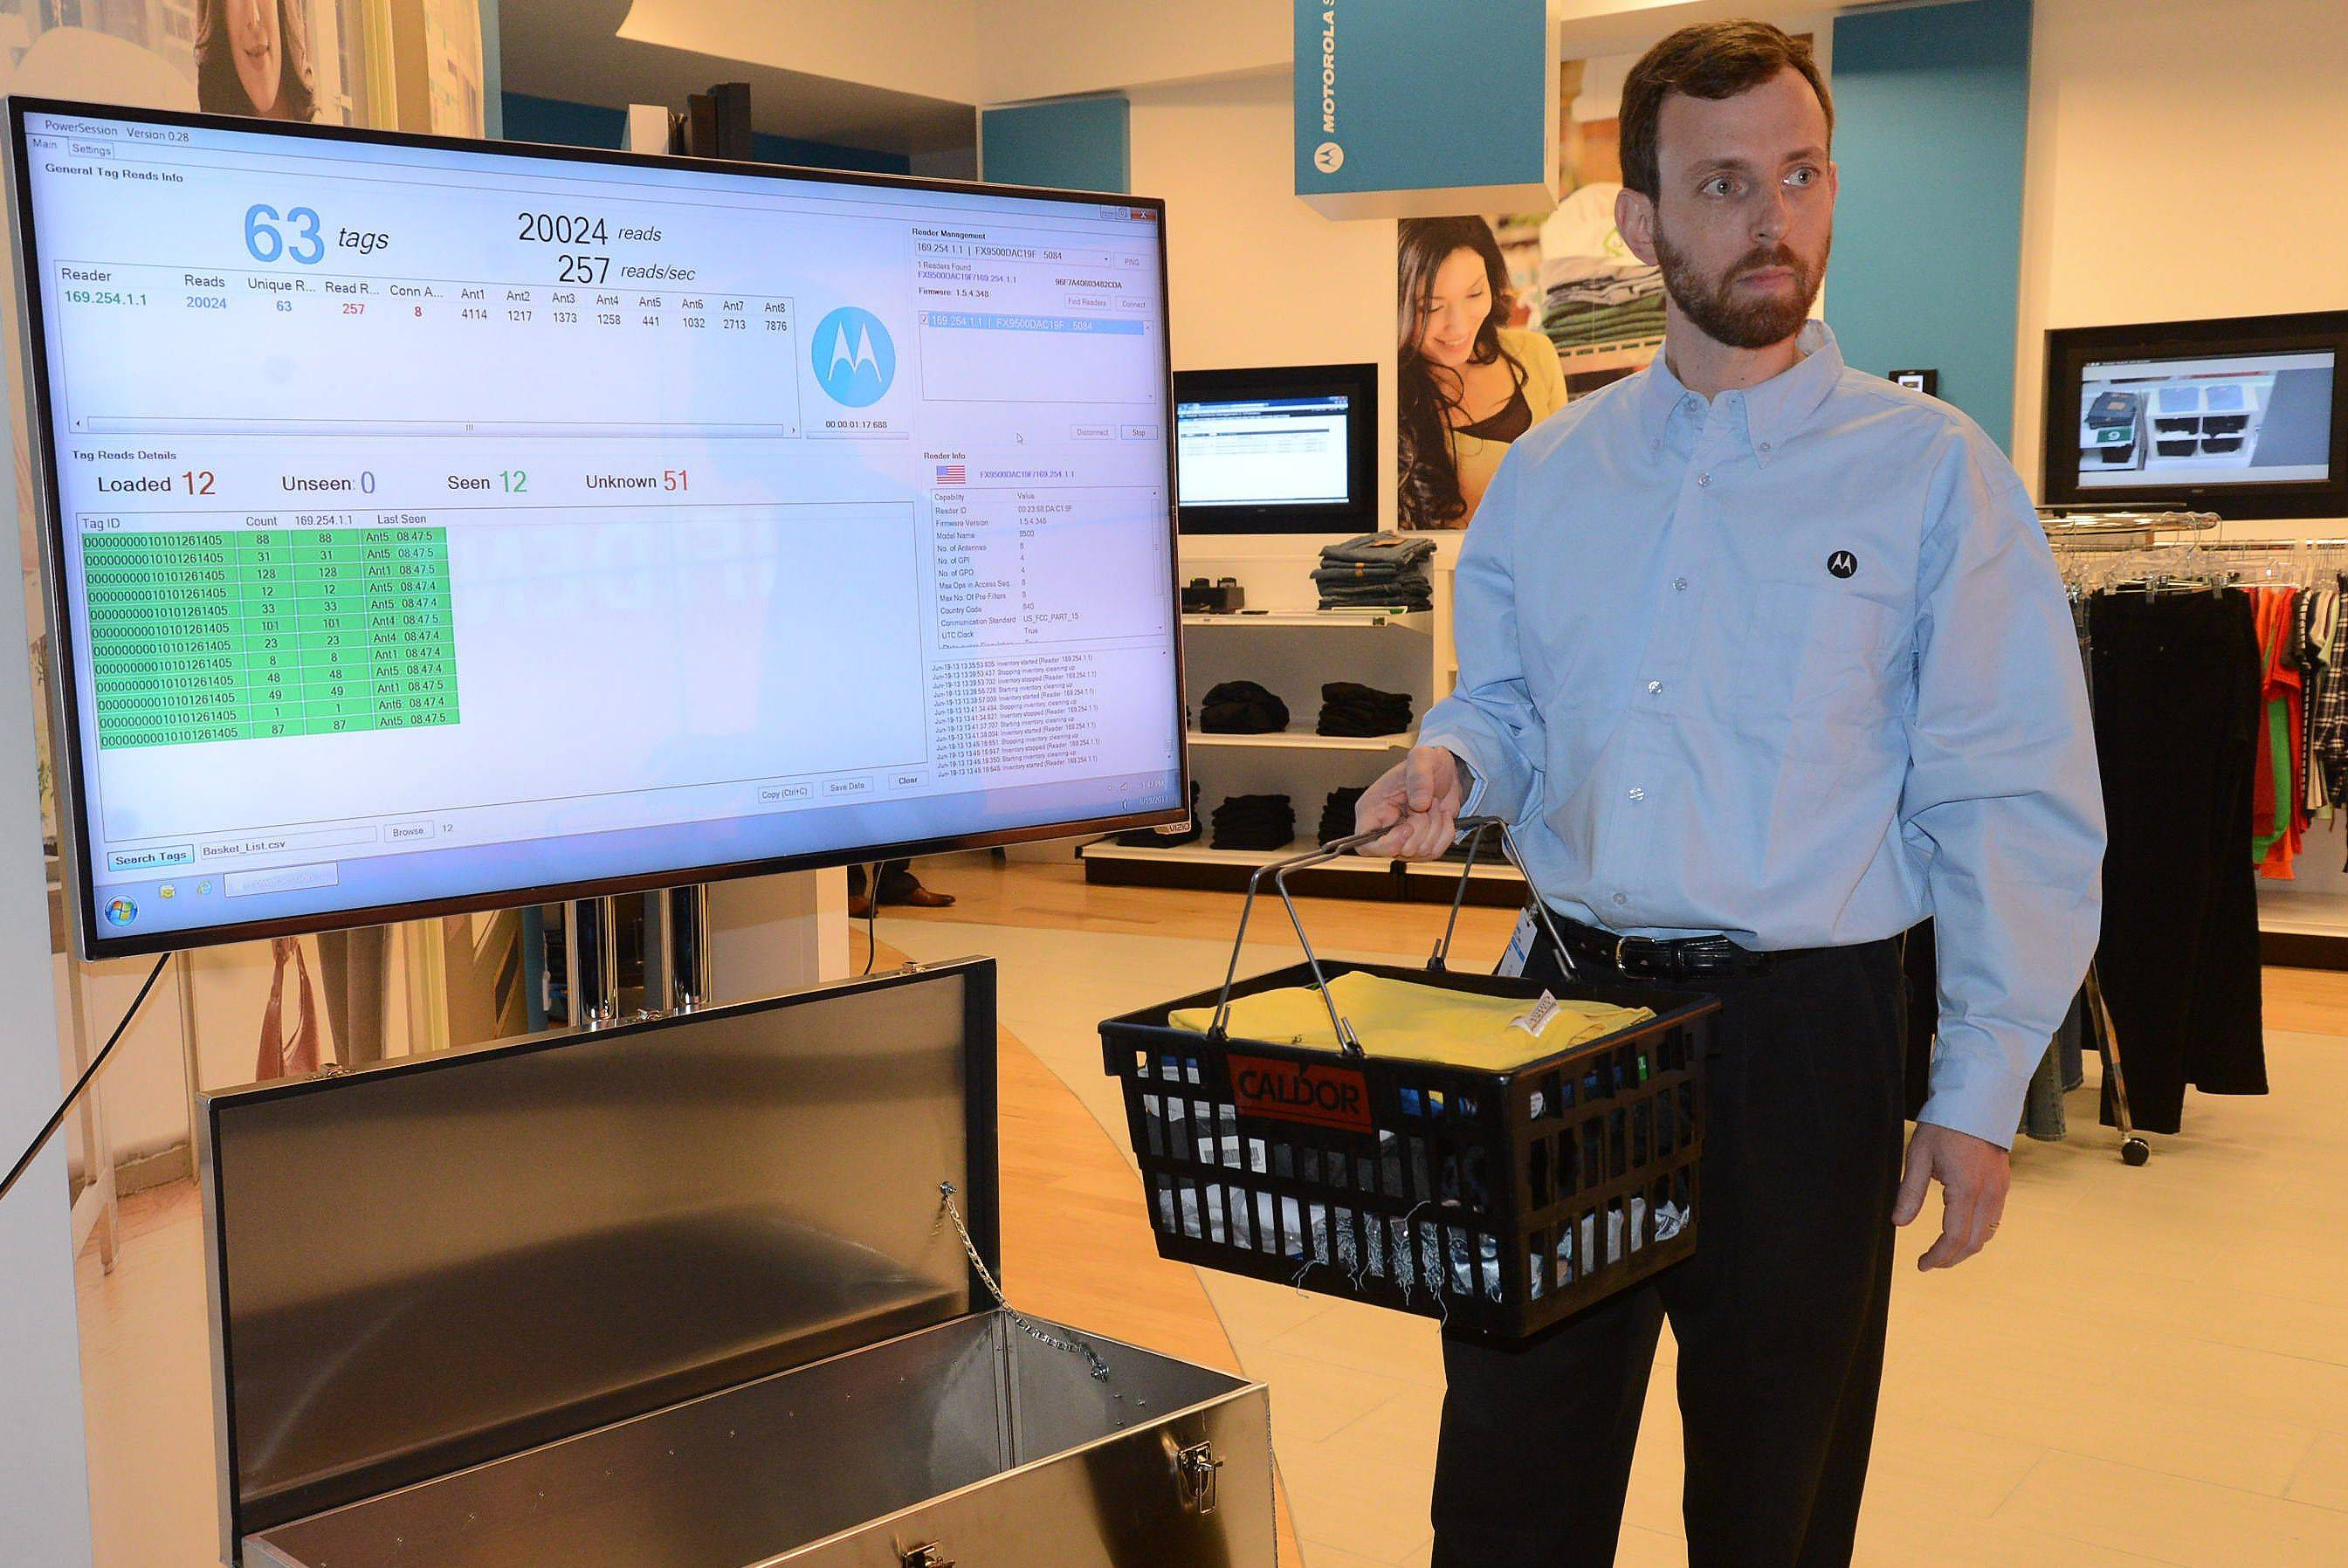 At the Motorola Solutions Innovation Showcase 2013, David Bellows demonstrates how an Overhead RFID Reader would work in a retail store as it quickly knows what's in a basket.